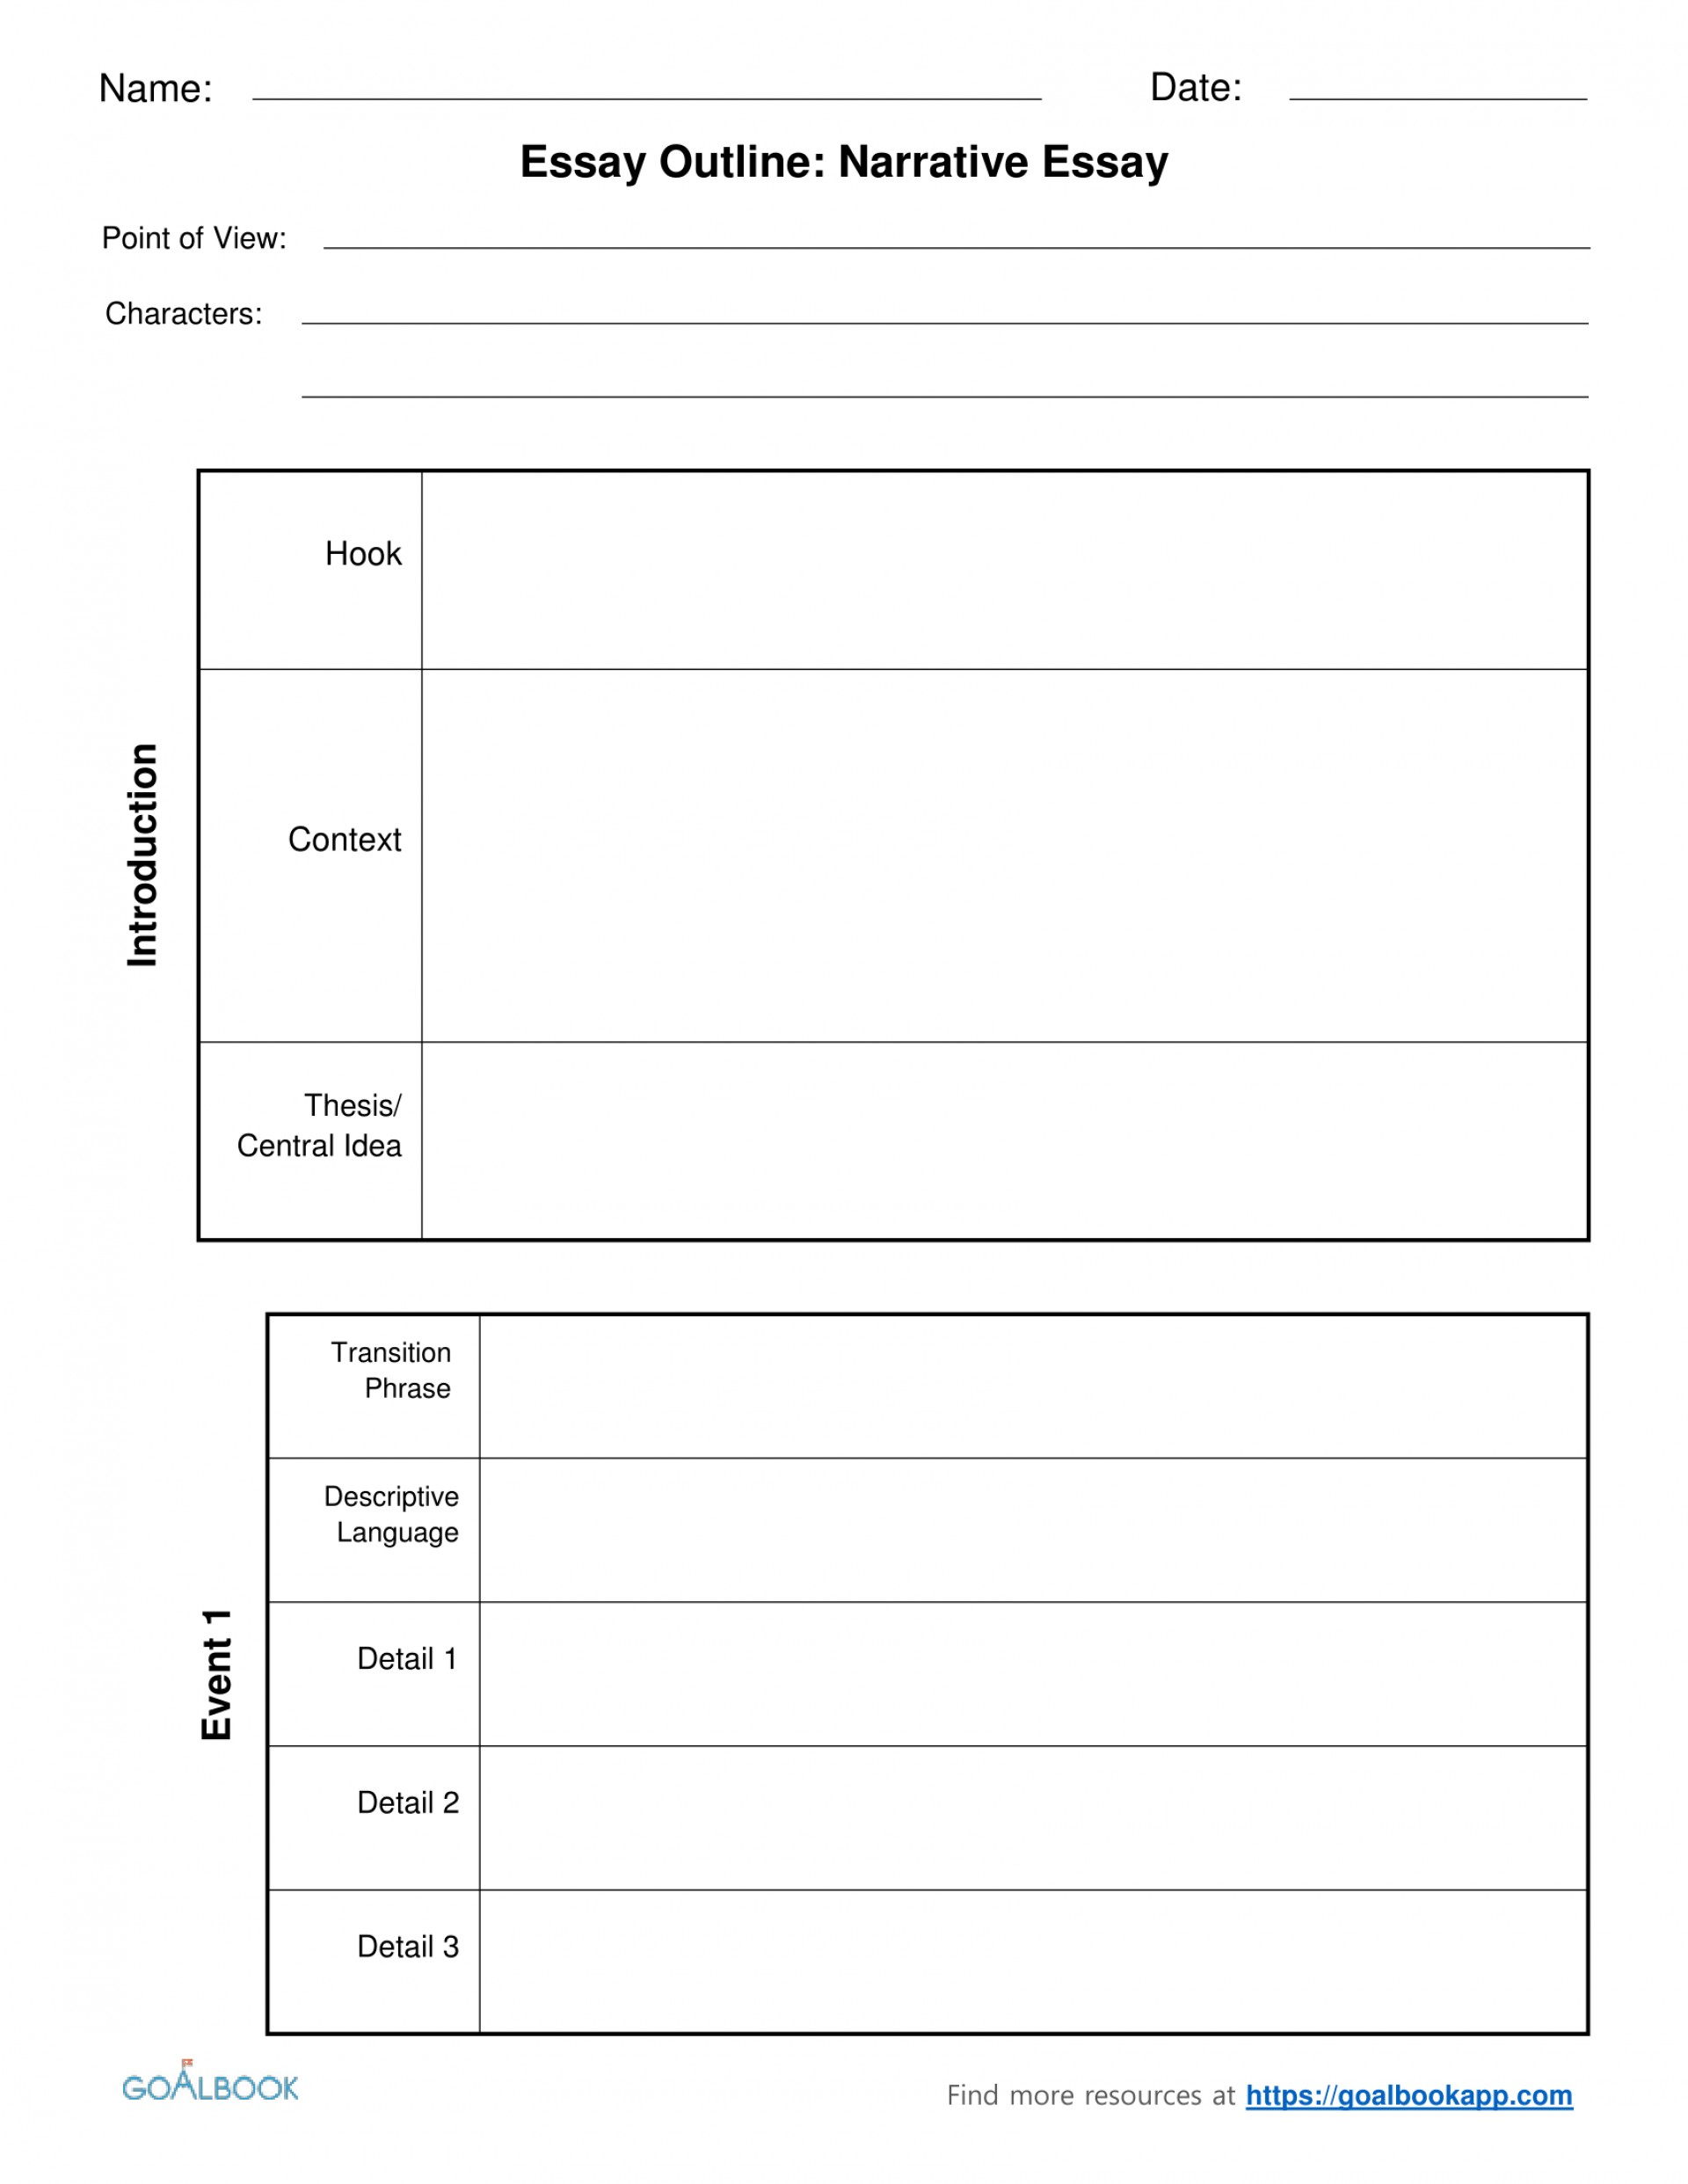 009 4narrativeessayoutlinechunked Essay Example Narrative Graphic Incredible Organizer Middle School Pdf Story 1920